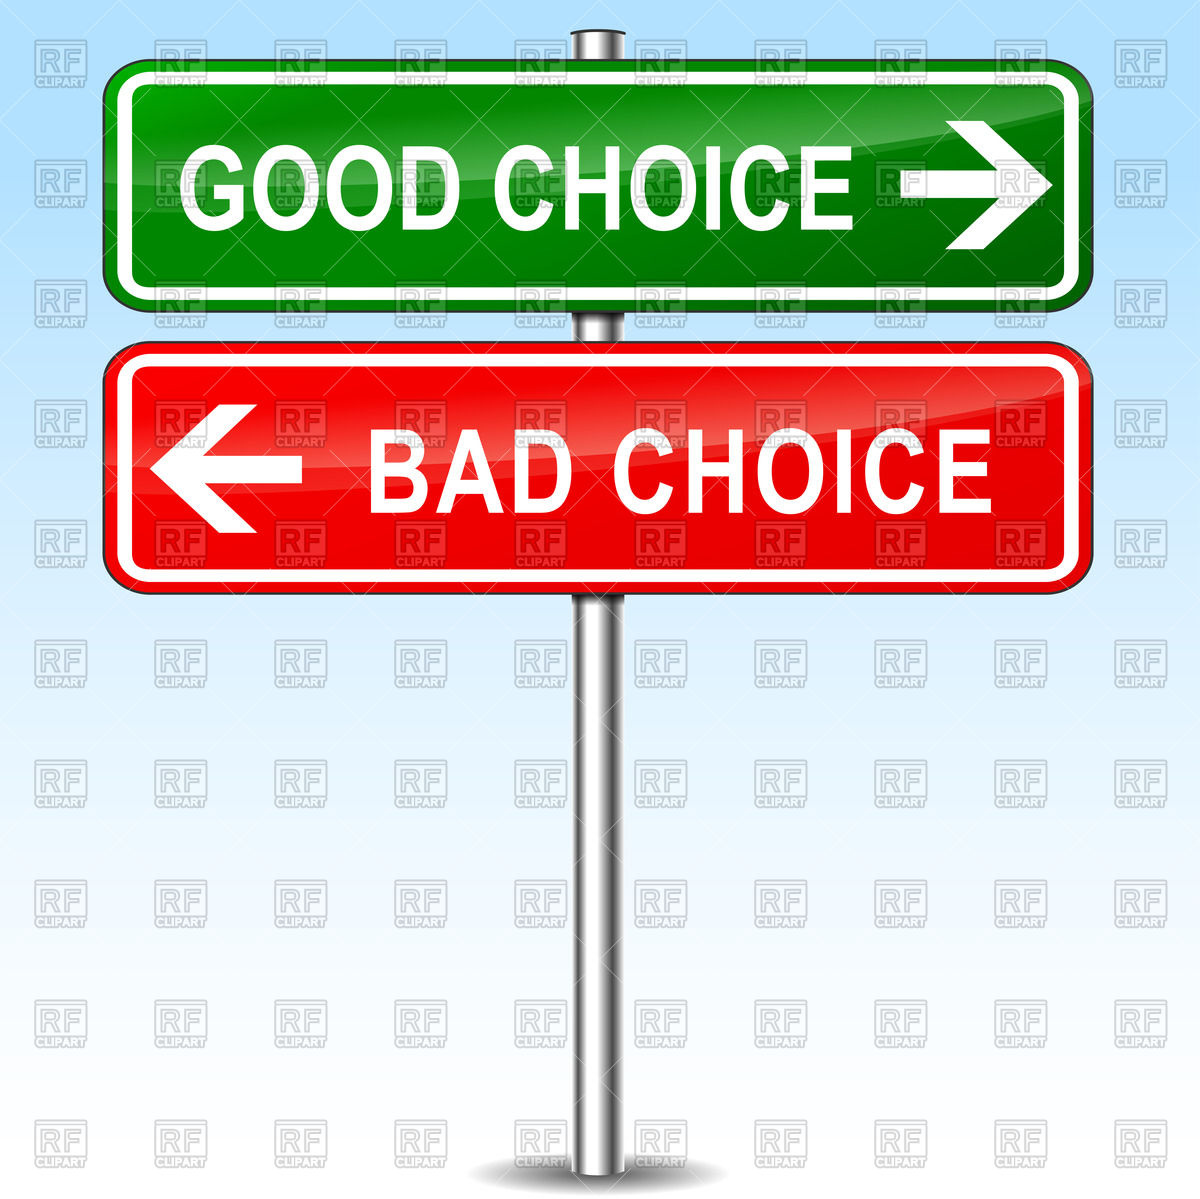 Good and bad choice directional road sign Vector Image #70616.